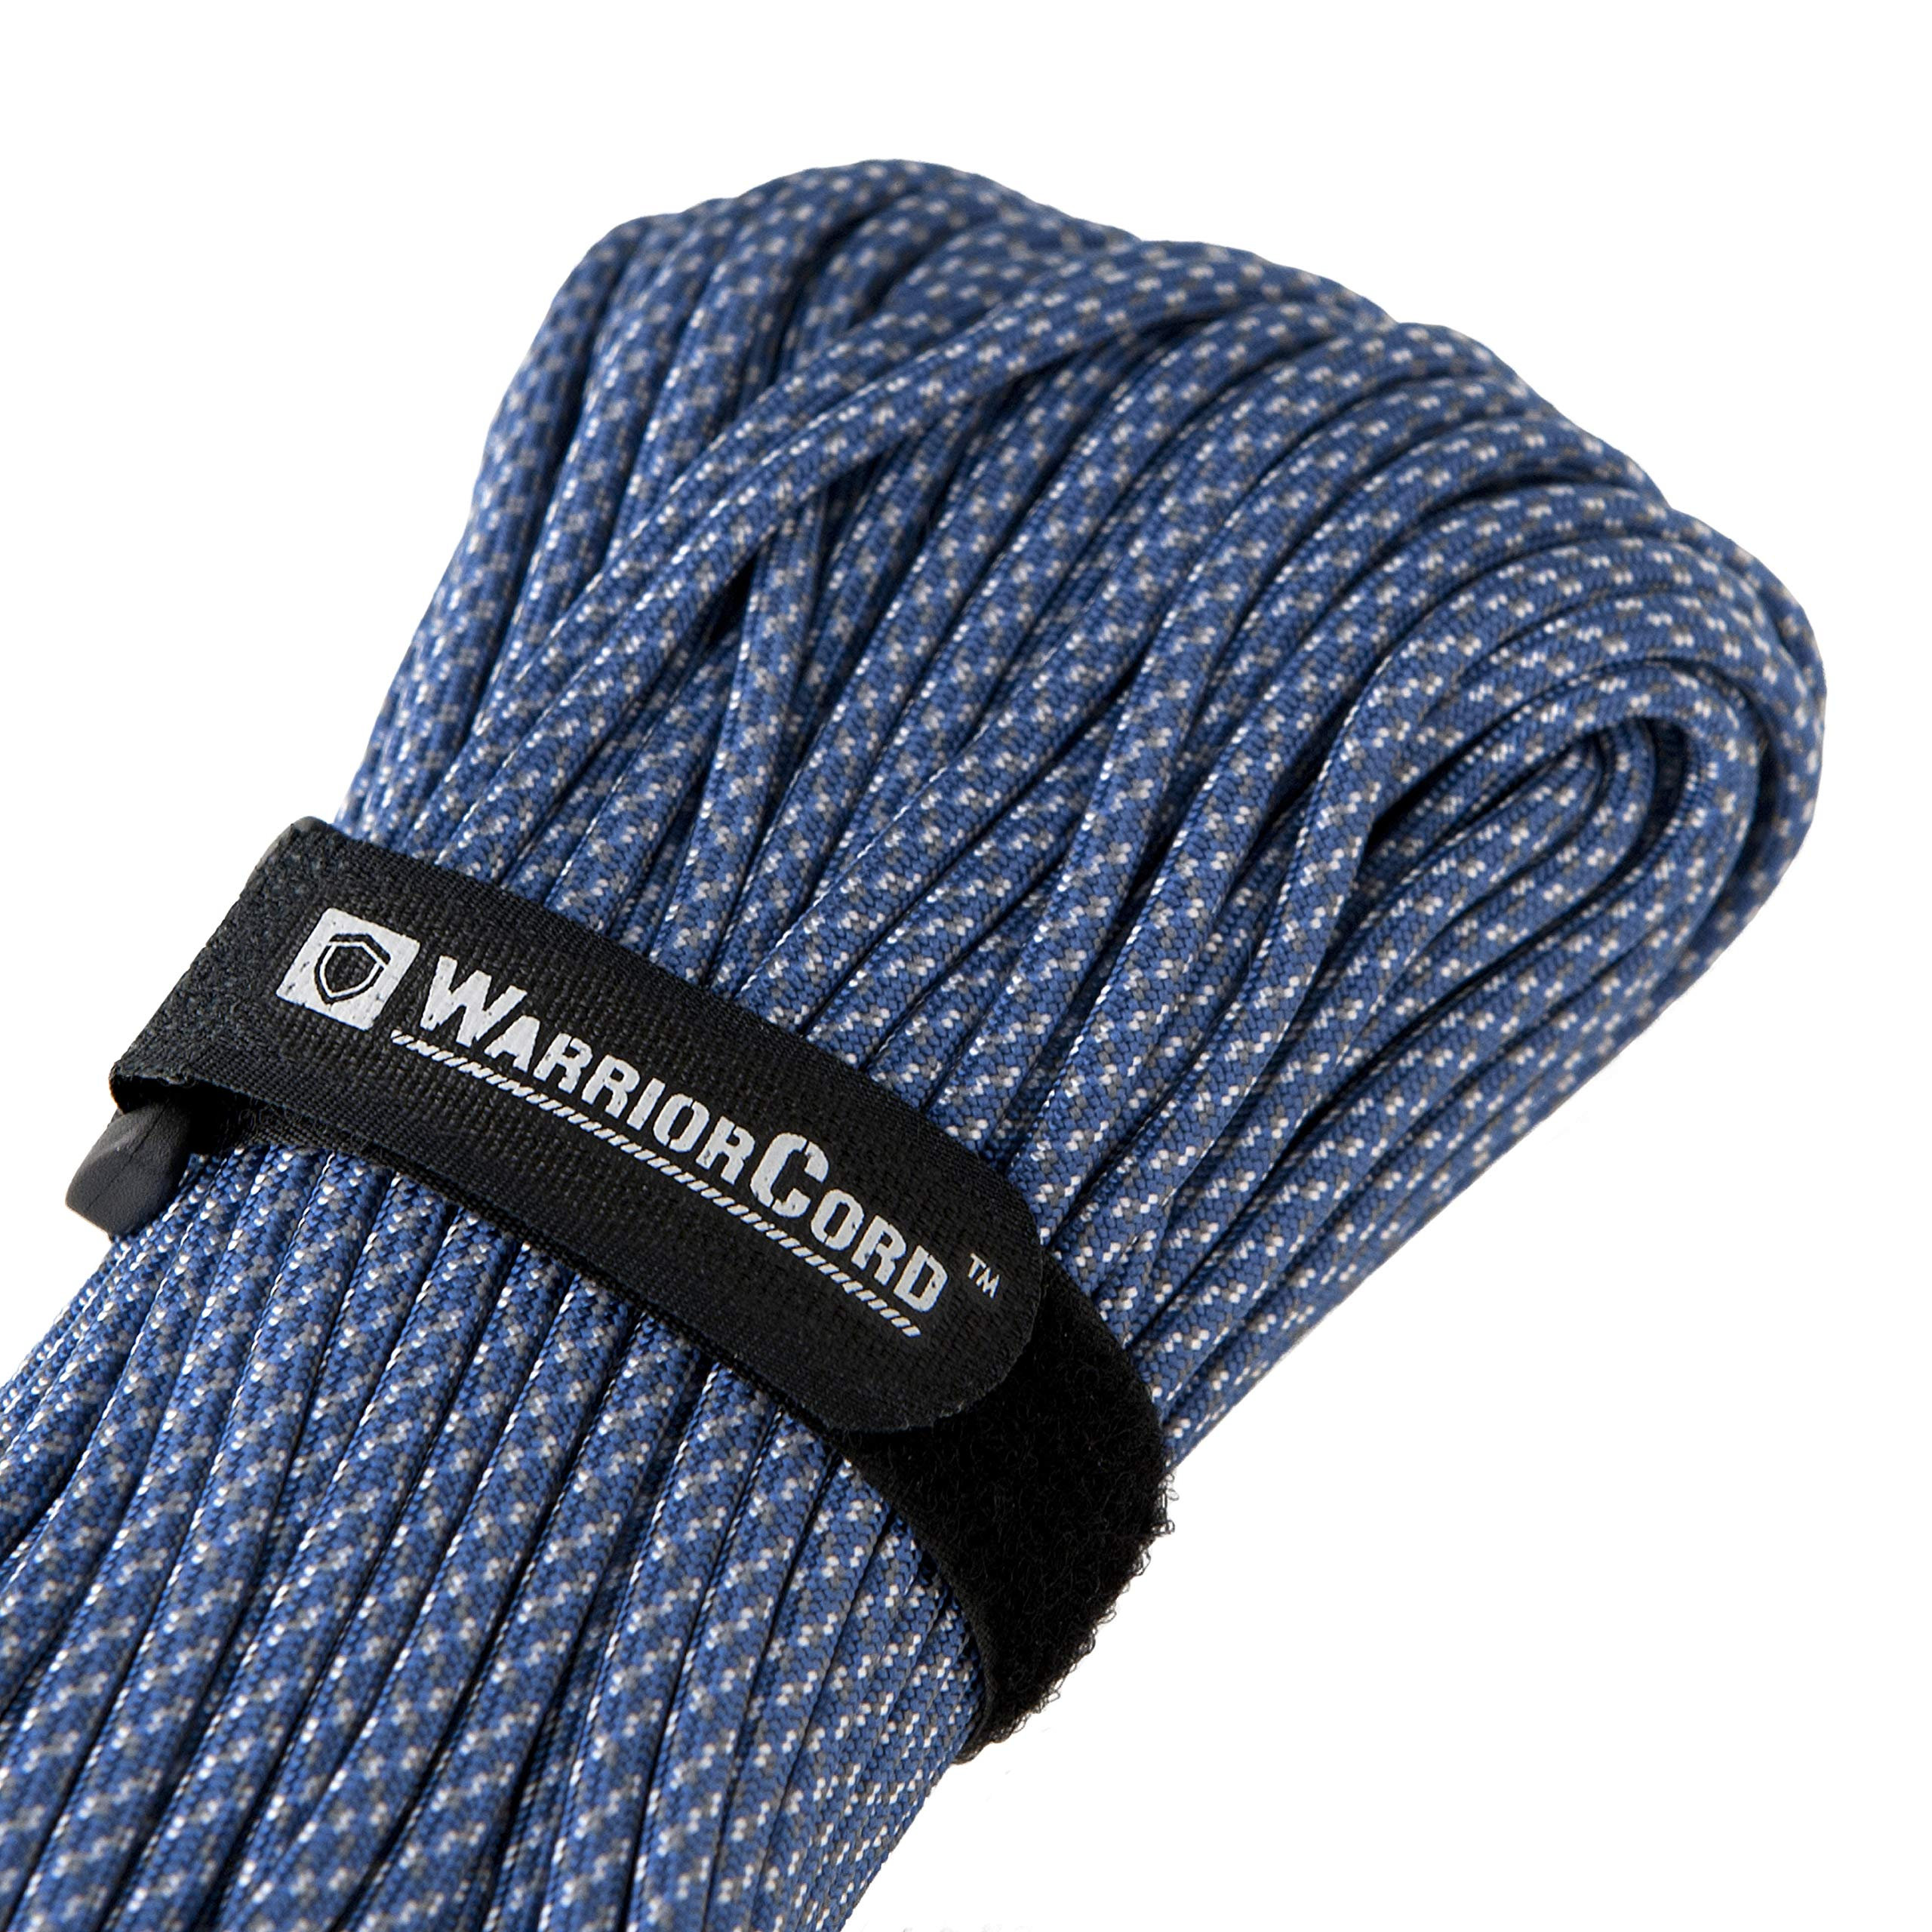 Titan WarriorCord | DIGI-Blue | 103 Continuous FEET | Exceeds Authentic MIL-C-5040, Type III 550 Paracord Standards. 7 Strand, 5/32'' (4mm) Diameter, Military Parachute Cord.